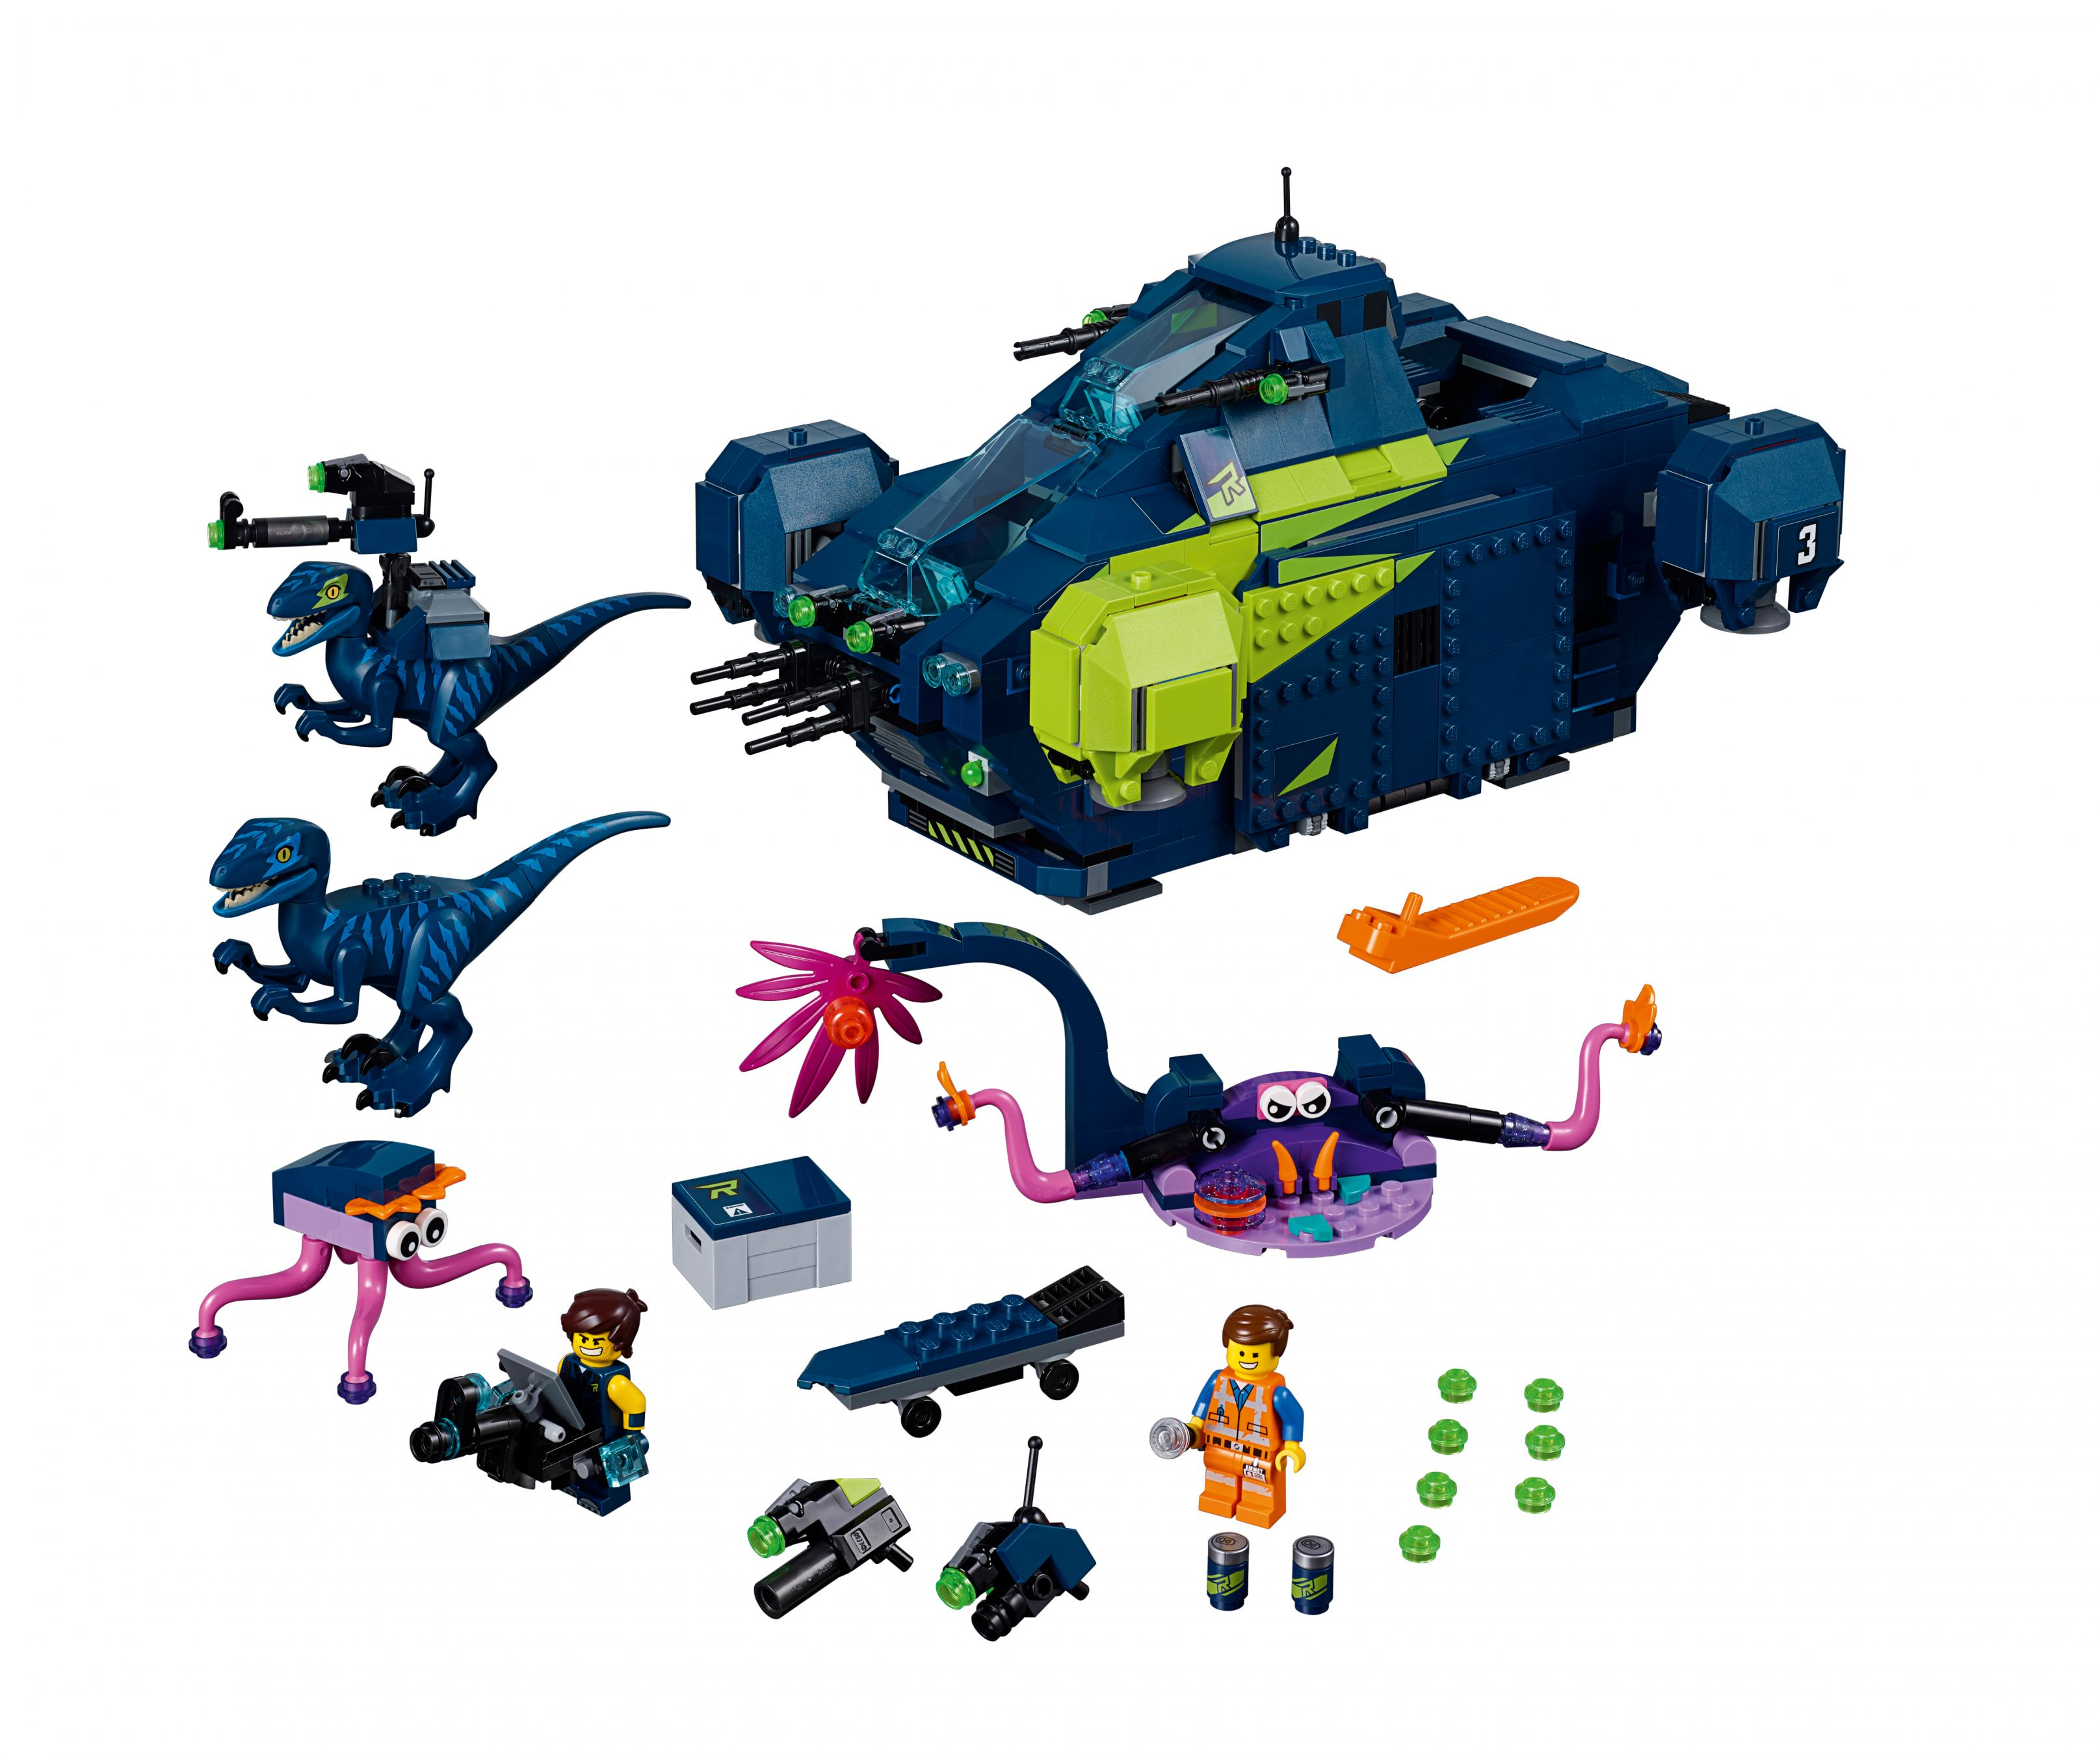 Rex2019Rex's Rexplorer Lego Movie 2 The Von Der 70835 IE92DWH